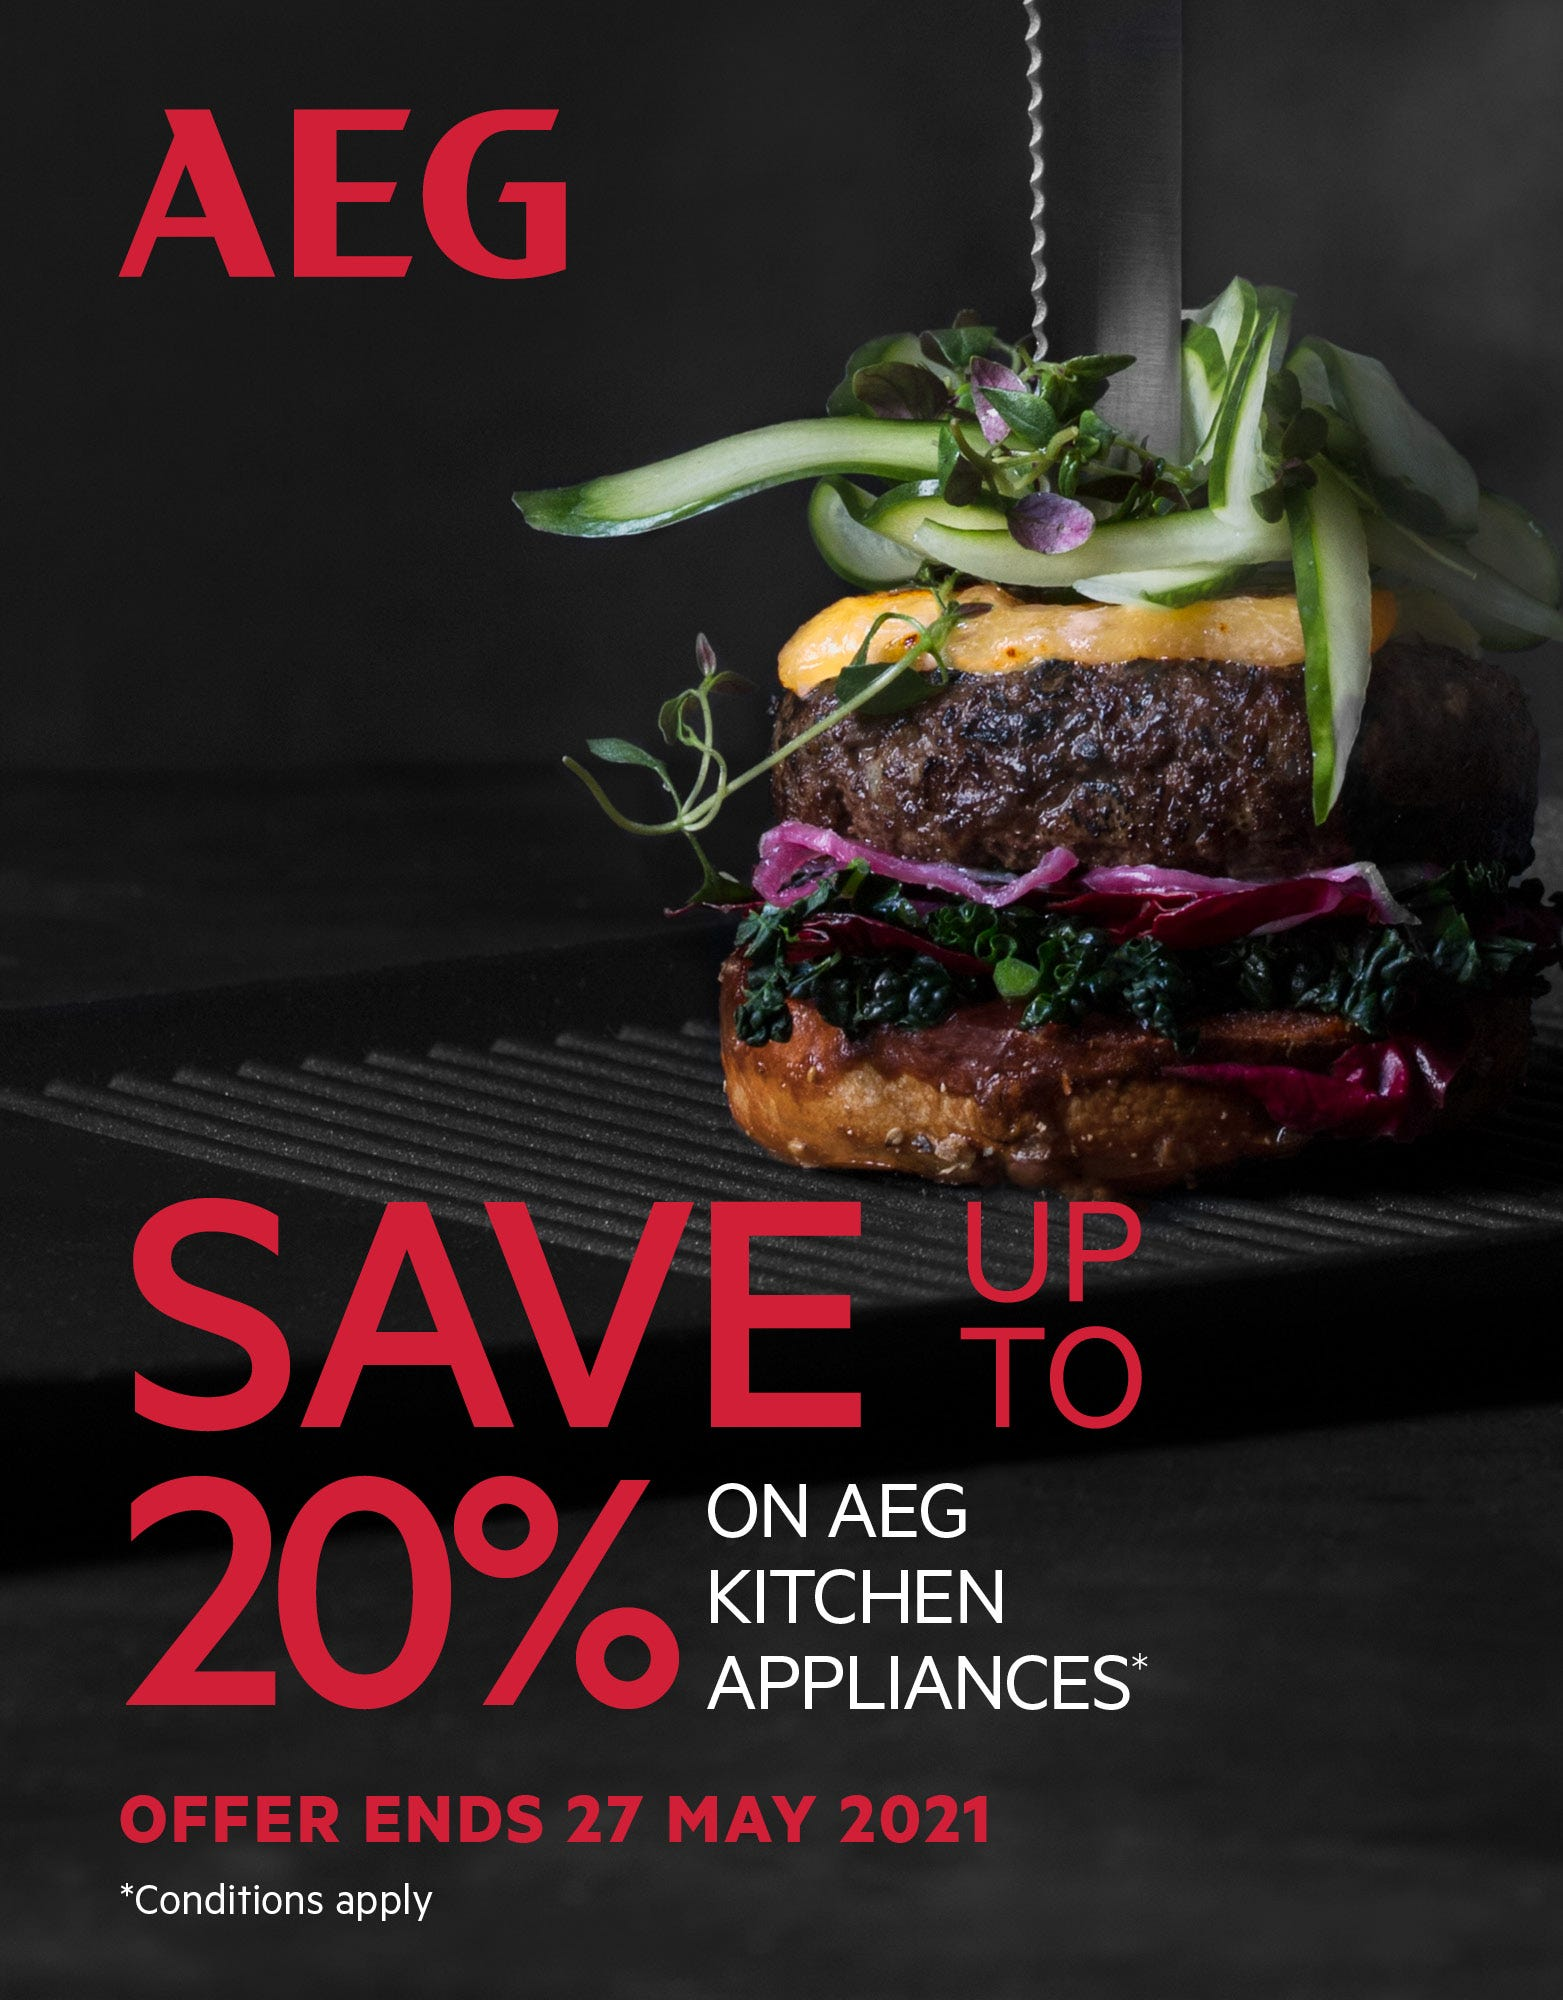 Save up to 20% on AEG Kitchen appliances with e&s. Conditions apply - ENDS 27/05/21